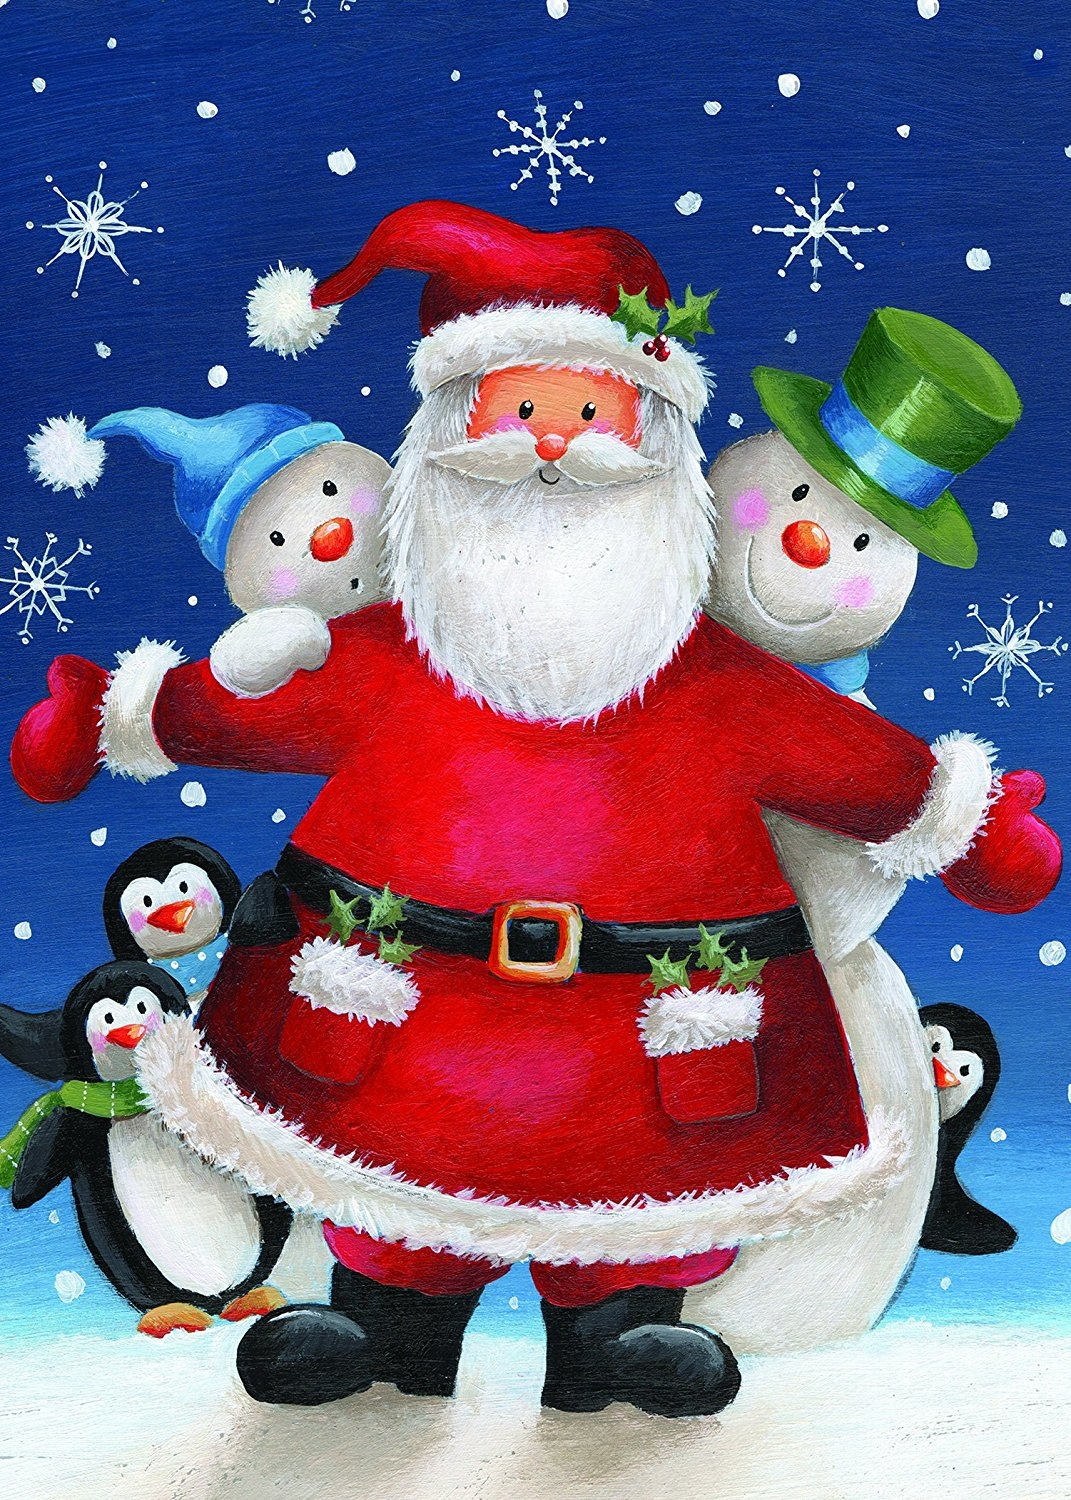 Santa Claus, Snowman And Penguin Design Greeting Cards (Set Of 30) Looking  For Something Festive And Fun? You Canu0027t Go Wrong With This Crew!